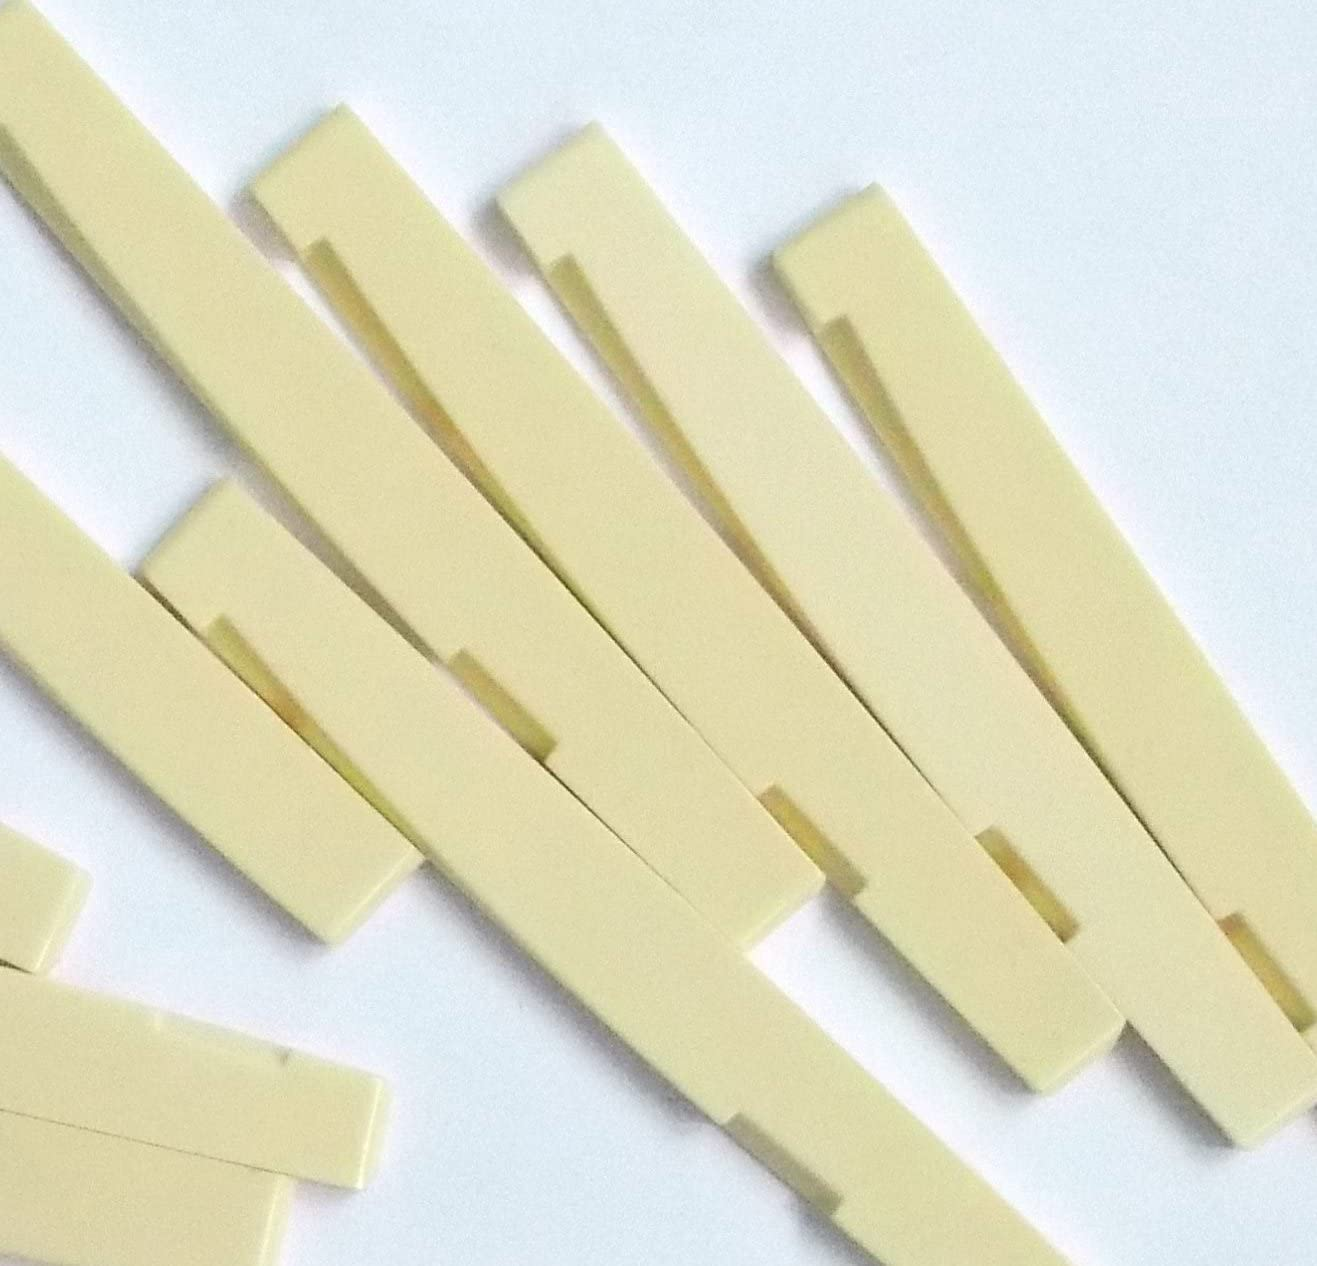 Generic 5 pcs Acoustic Guitar Saddles for 6 String Guitar Plastic 74 x 3 x 7.8-6.8 Ivory